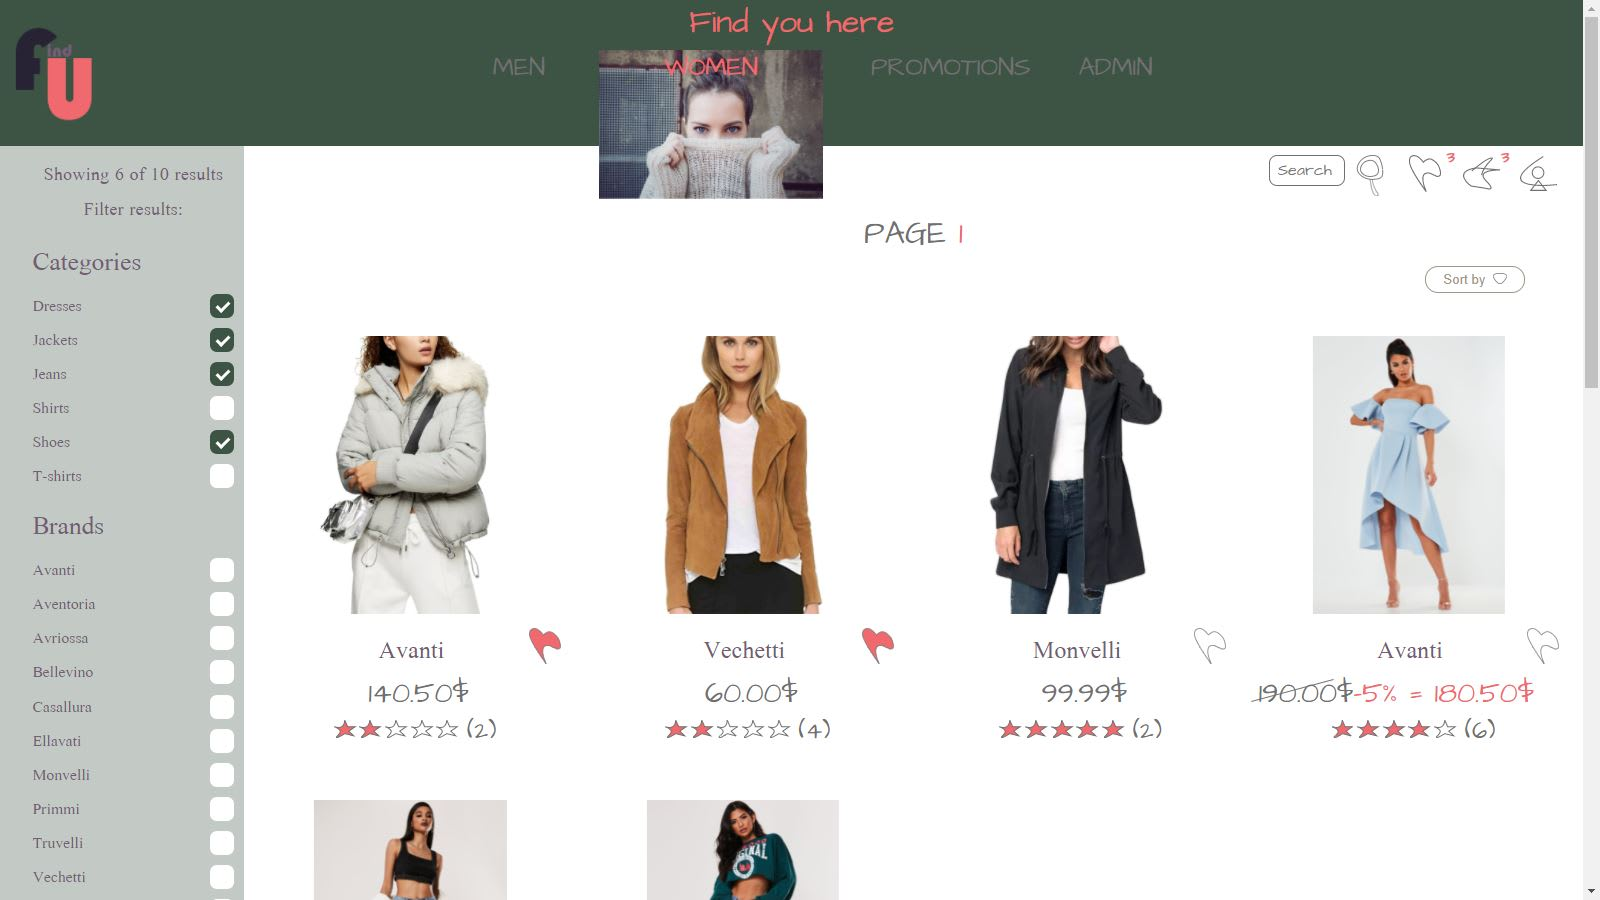 Products for women page on FindYou template